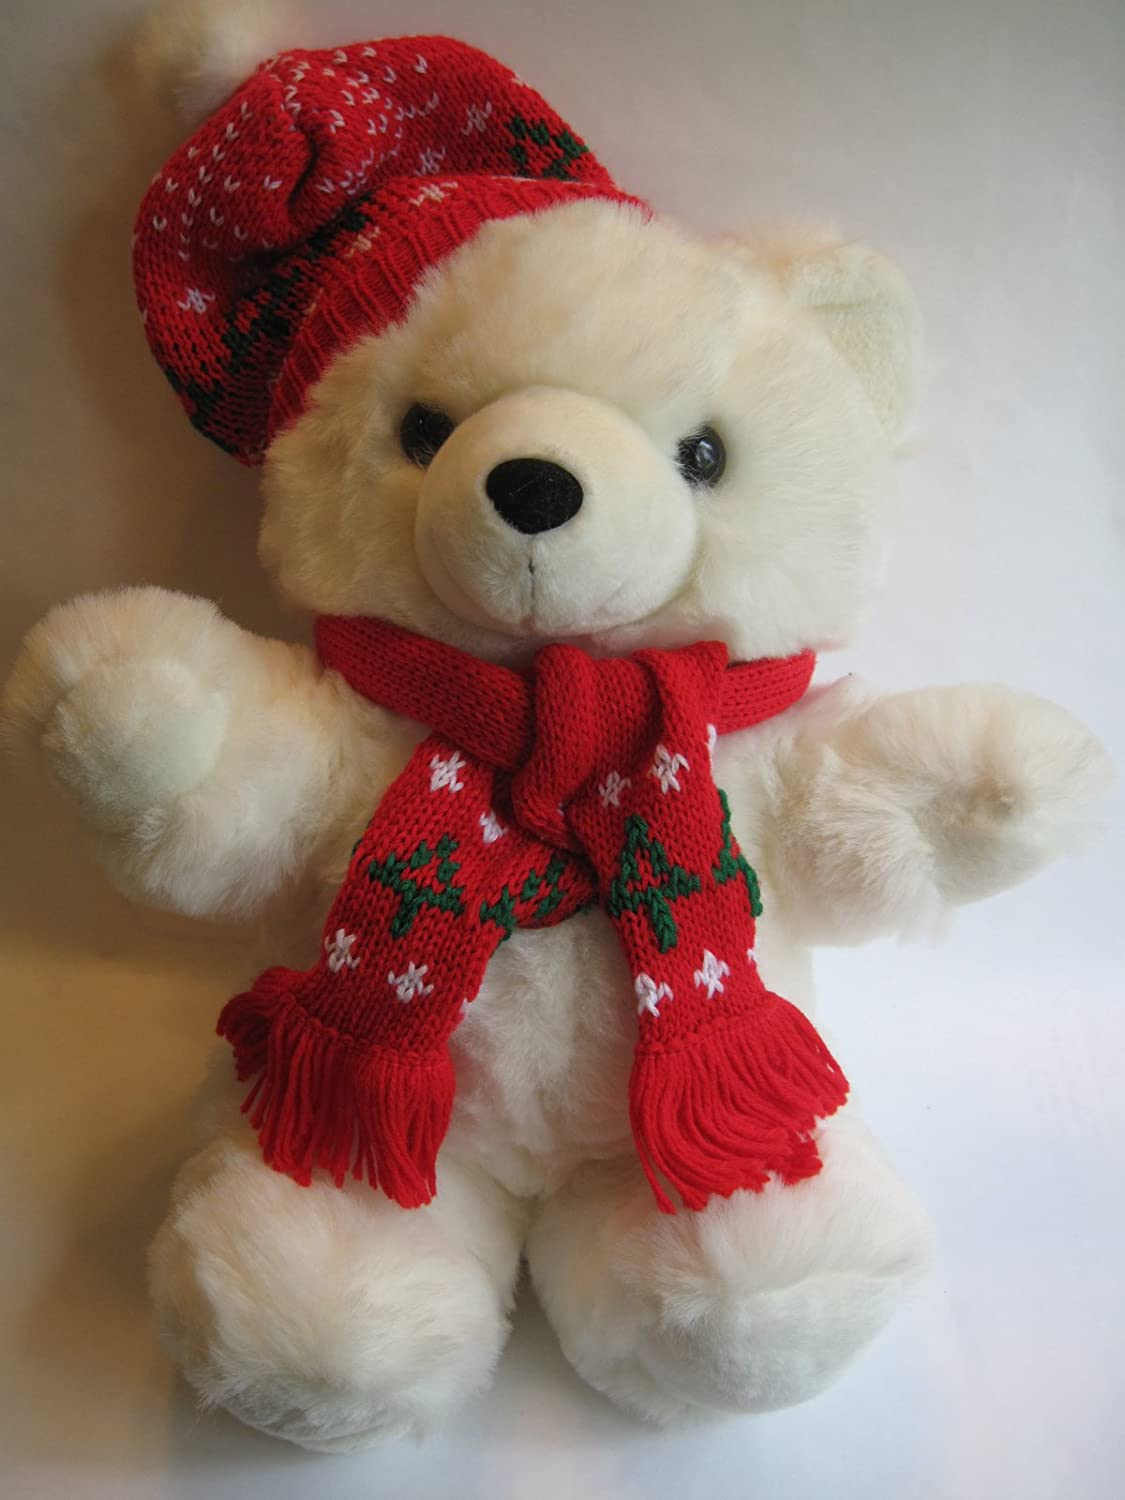 Amazon.com: 1996 Christmas Plush Teddy Bear Kmart 10th Anniversity ...